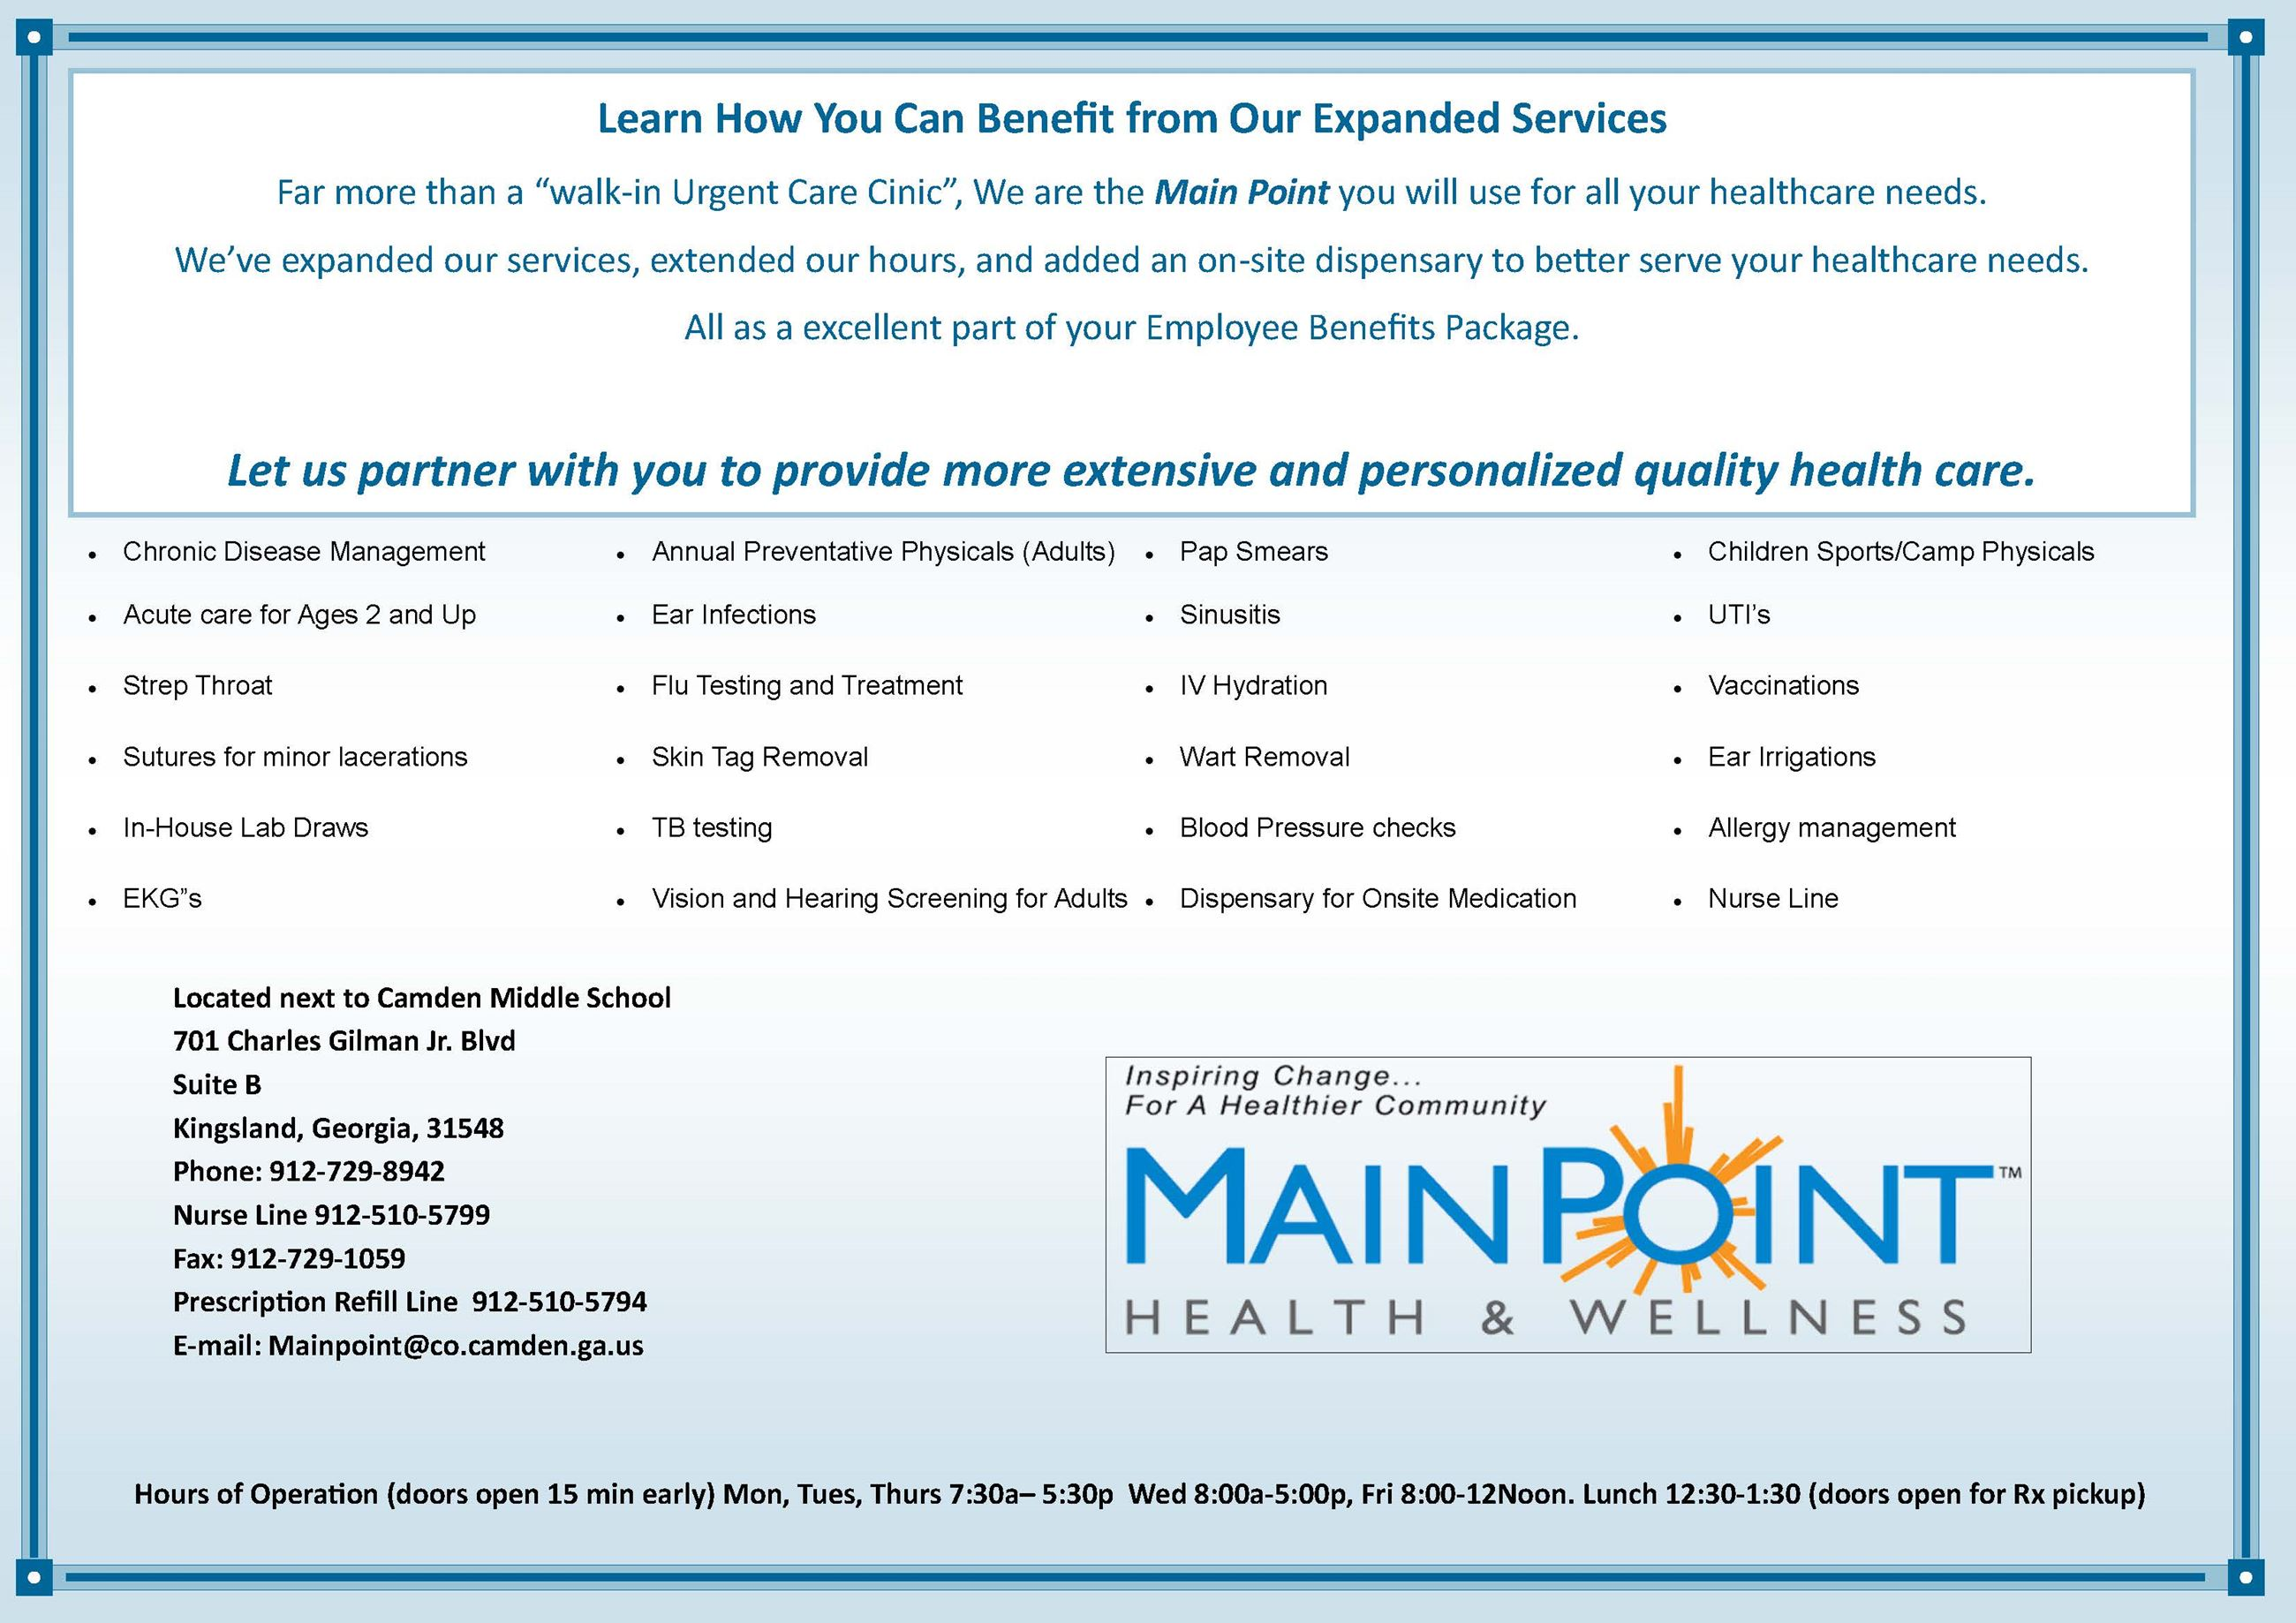 MainPoint Health & Wellness Informational Flyer Opens in new window